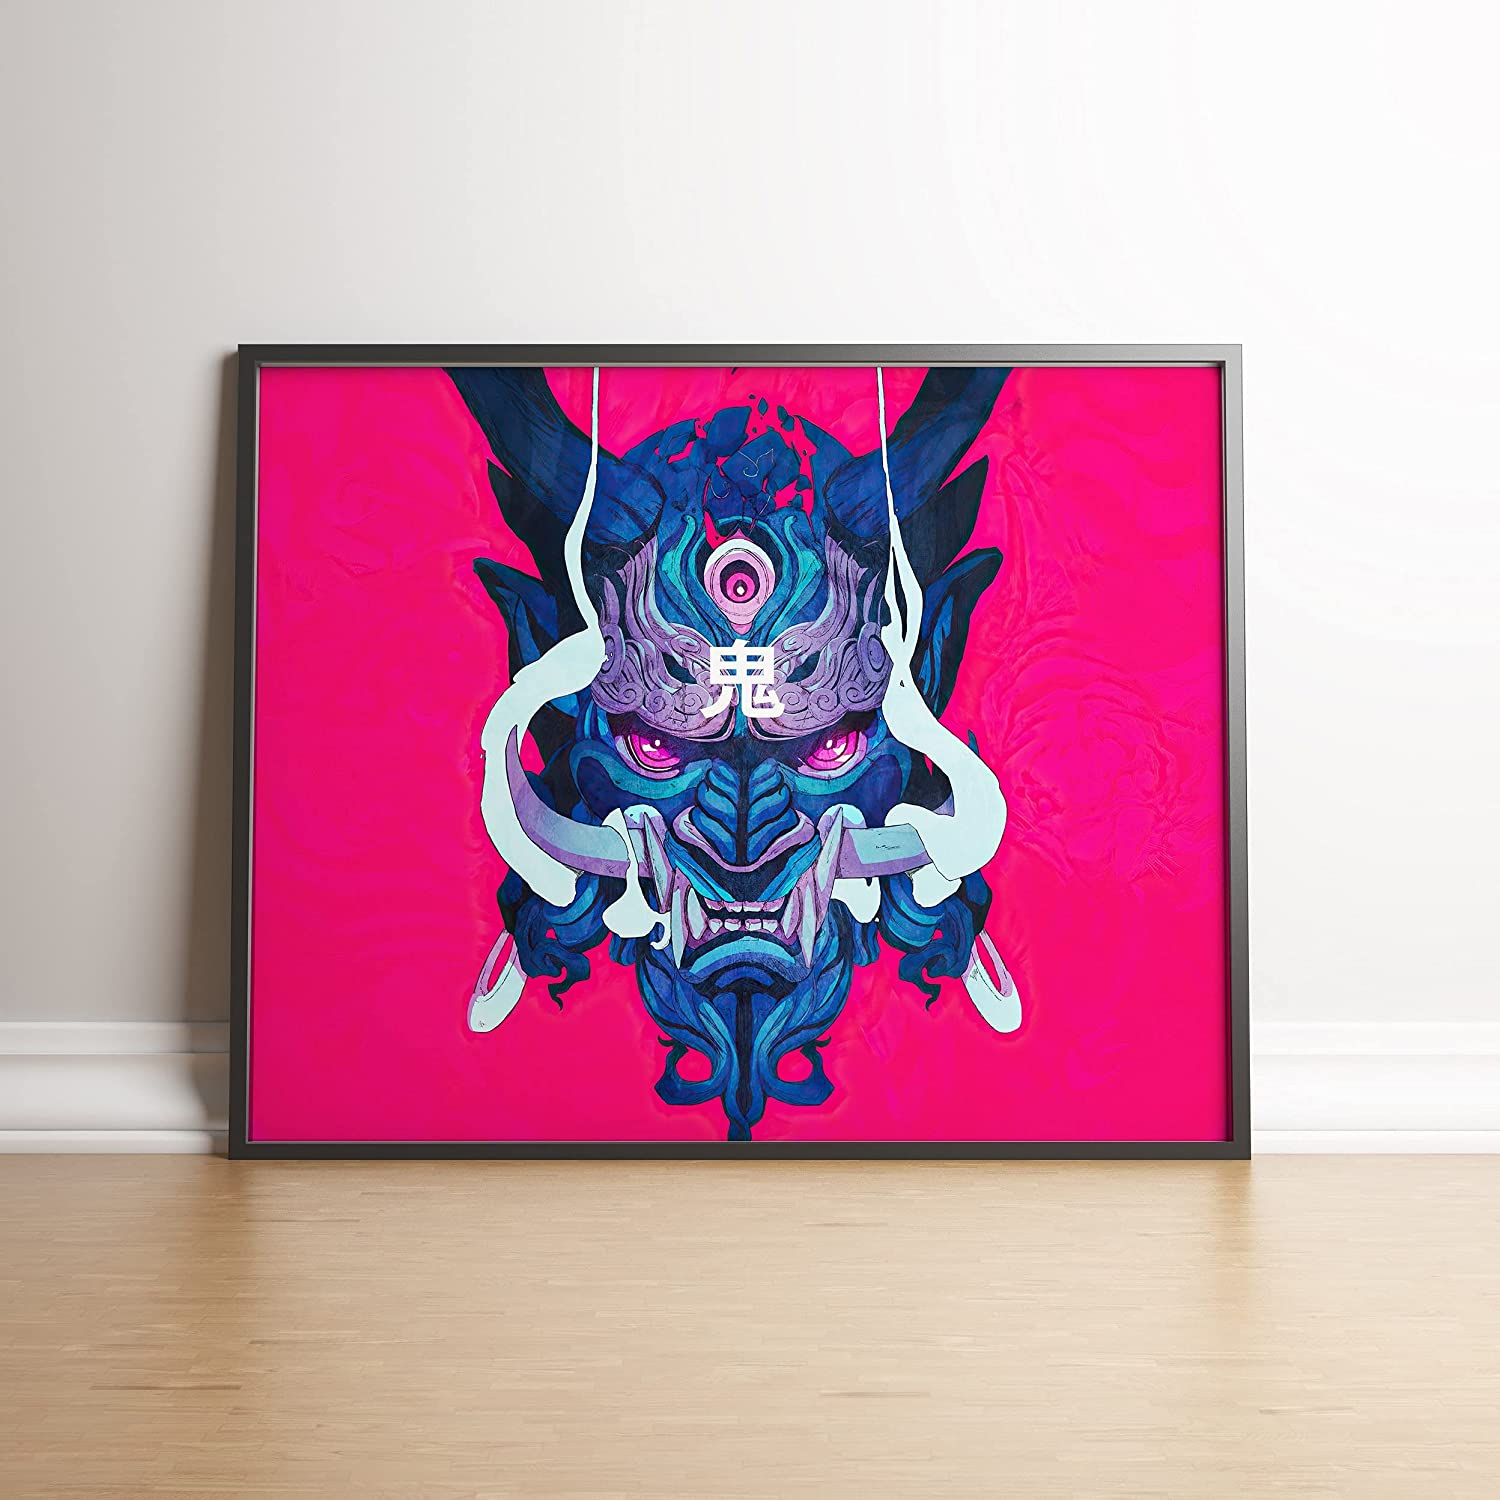 Poster Compatible With Bright Japanese Oni Mask Demon Art, Canvas Wall Decor, Design, Wall Print for Interior, Unframed, Size - 8,5x11 11x17 18x24 24x32 24x36